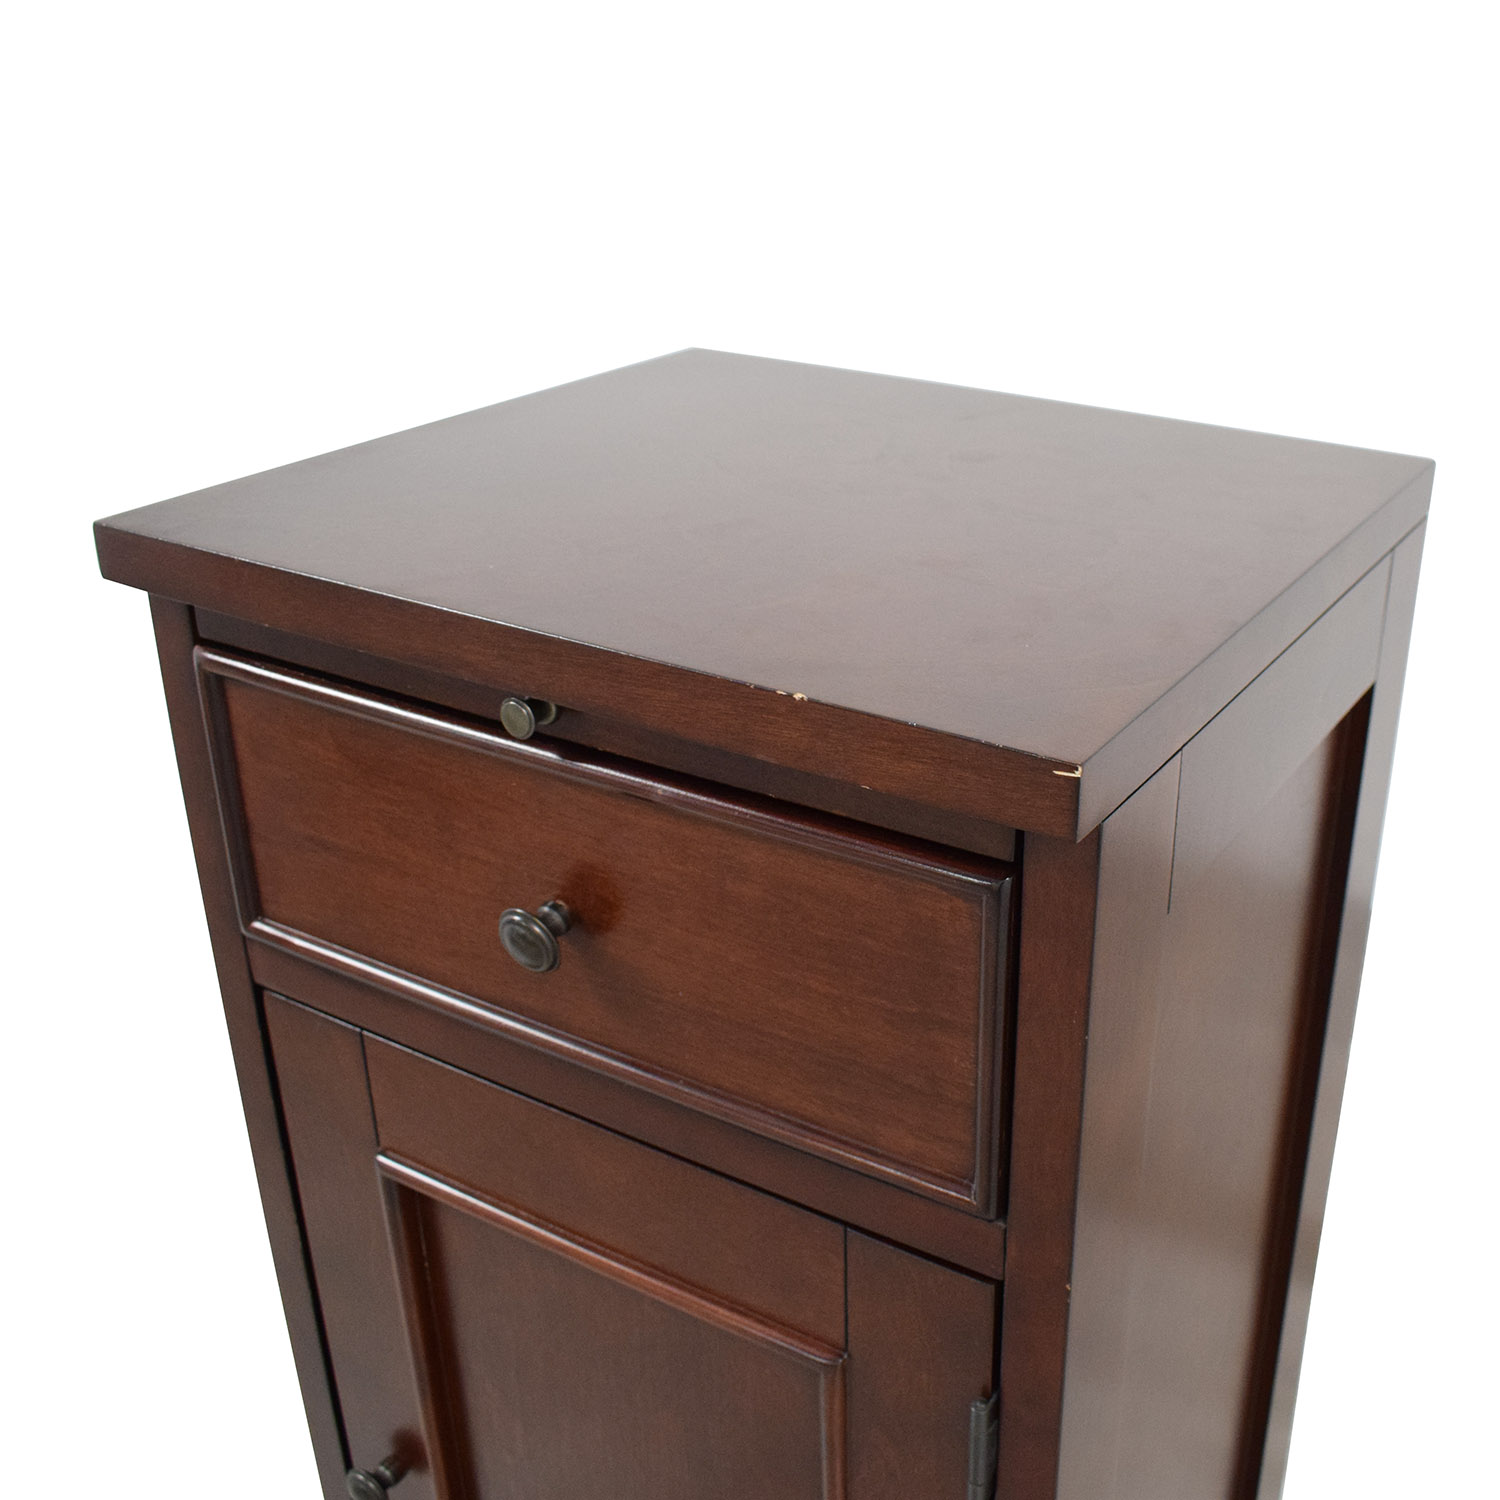 Crate & Barrel Cabinet Side Table / End Tables